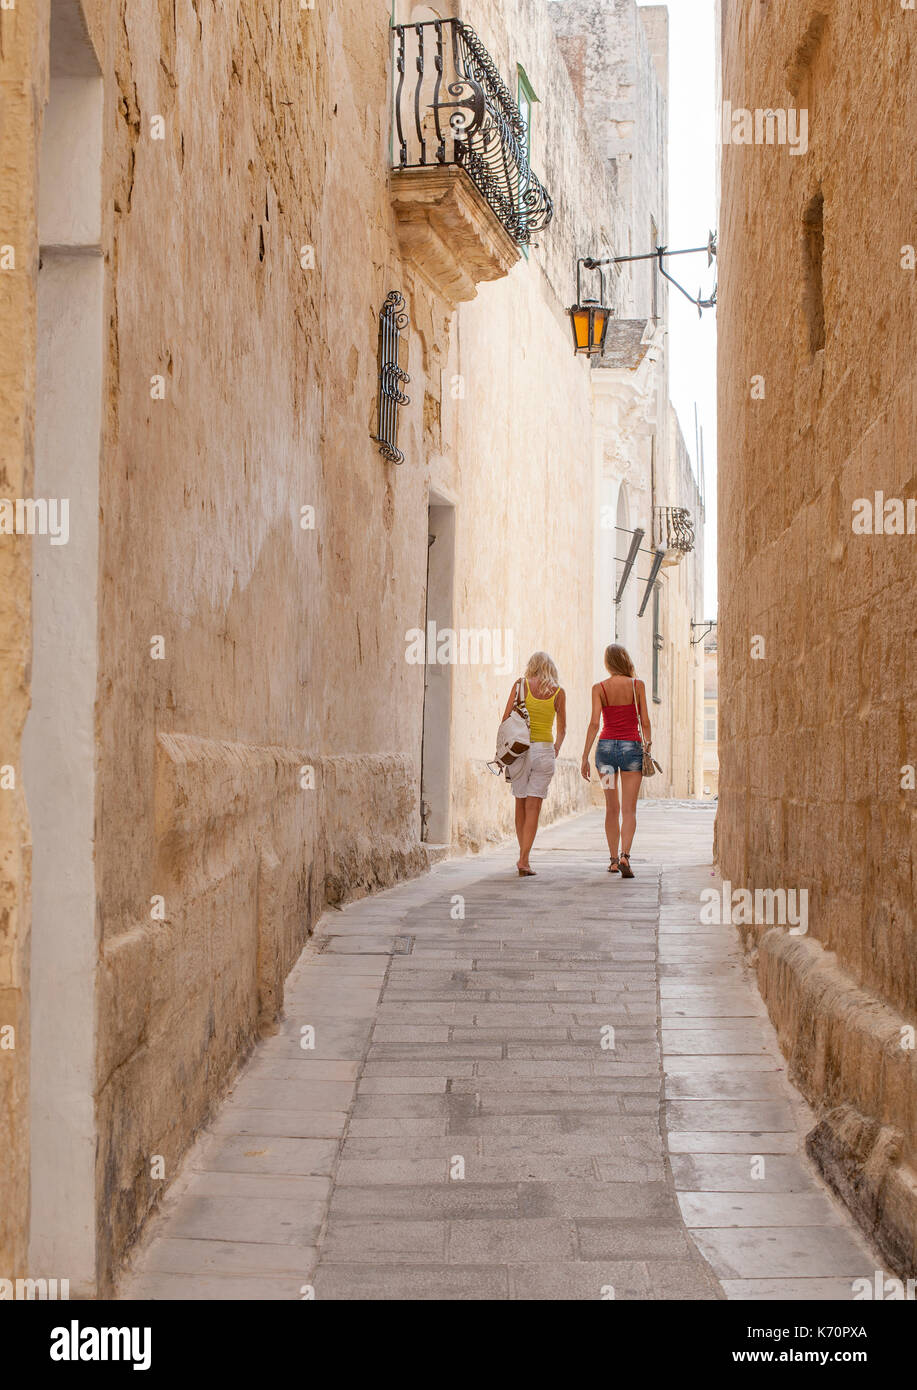 Narrow streets of the historic fortified city of Mdina (Città Vecchia or Città Notabile) in Malta. - Stock Image